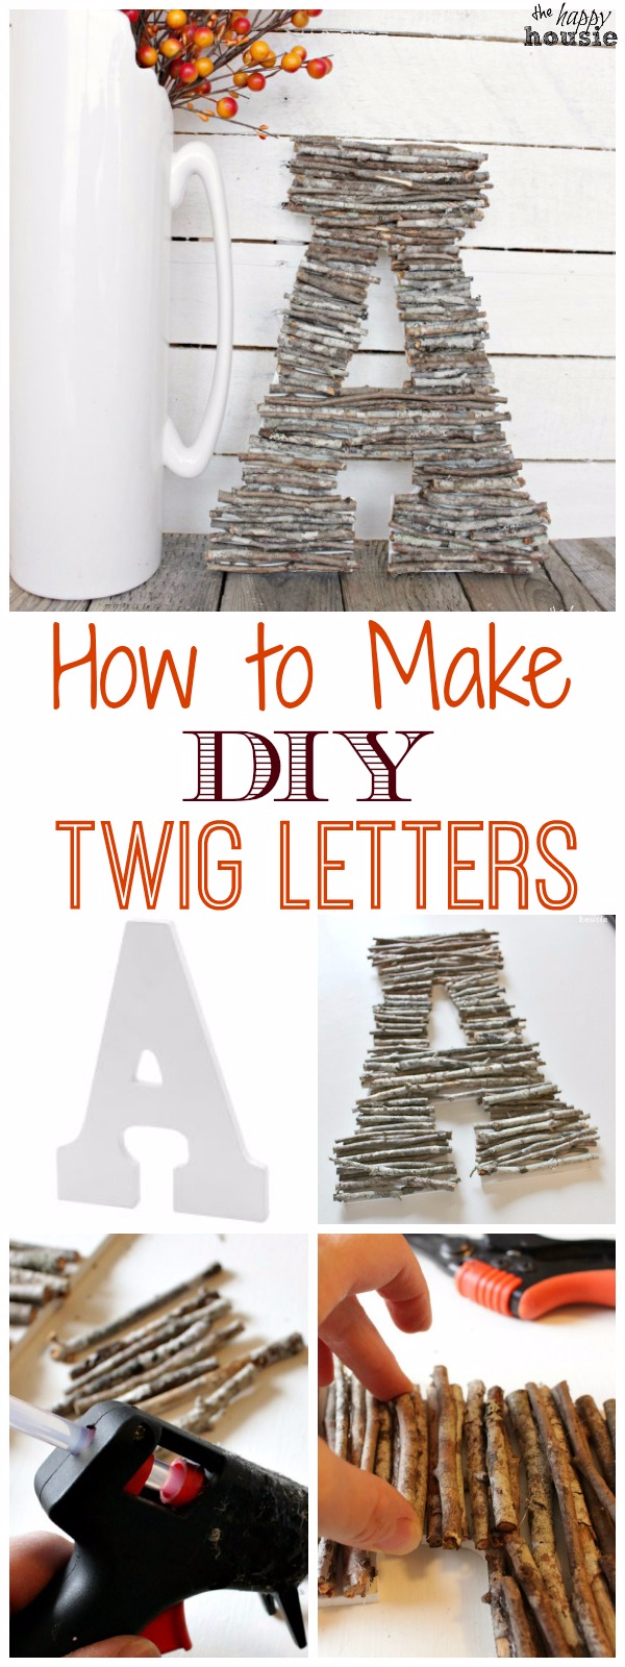 DIY Wall Letters and Initals Wall Art - DIY Twig Letters - Cool Architectural Letter Projects for Living Room Decor, Bedroom Ideas. Girl or Boy Nursery. Paint, Glitter, String Art, Easy Cardboard and Rustic Wooden Ideas